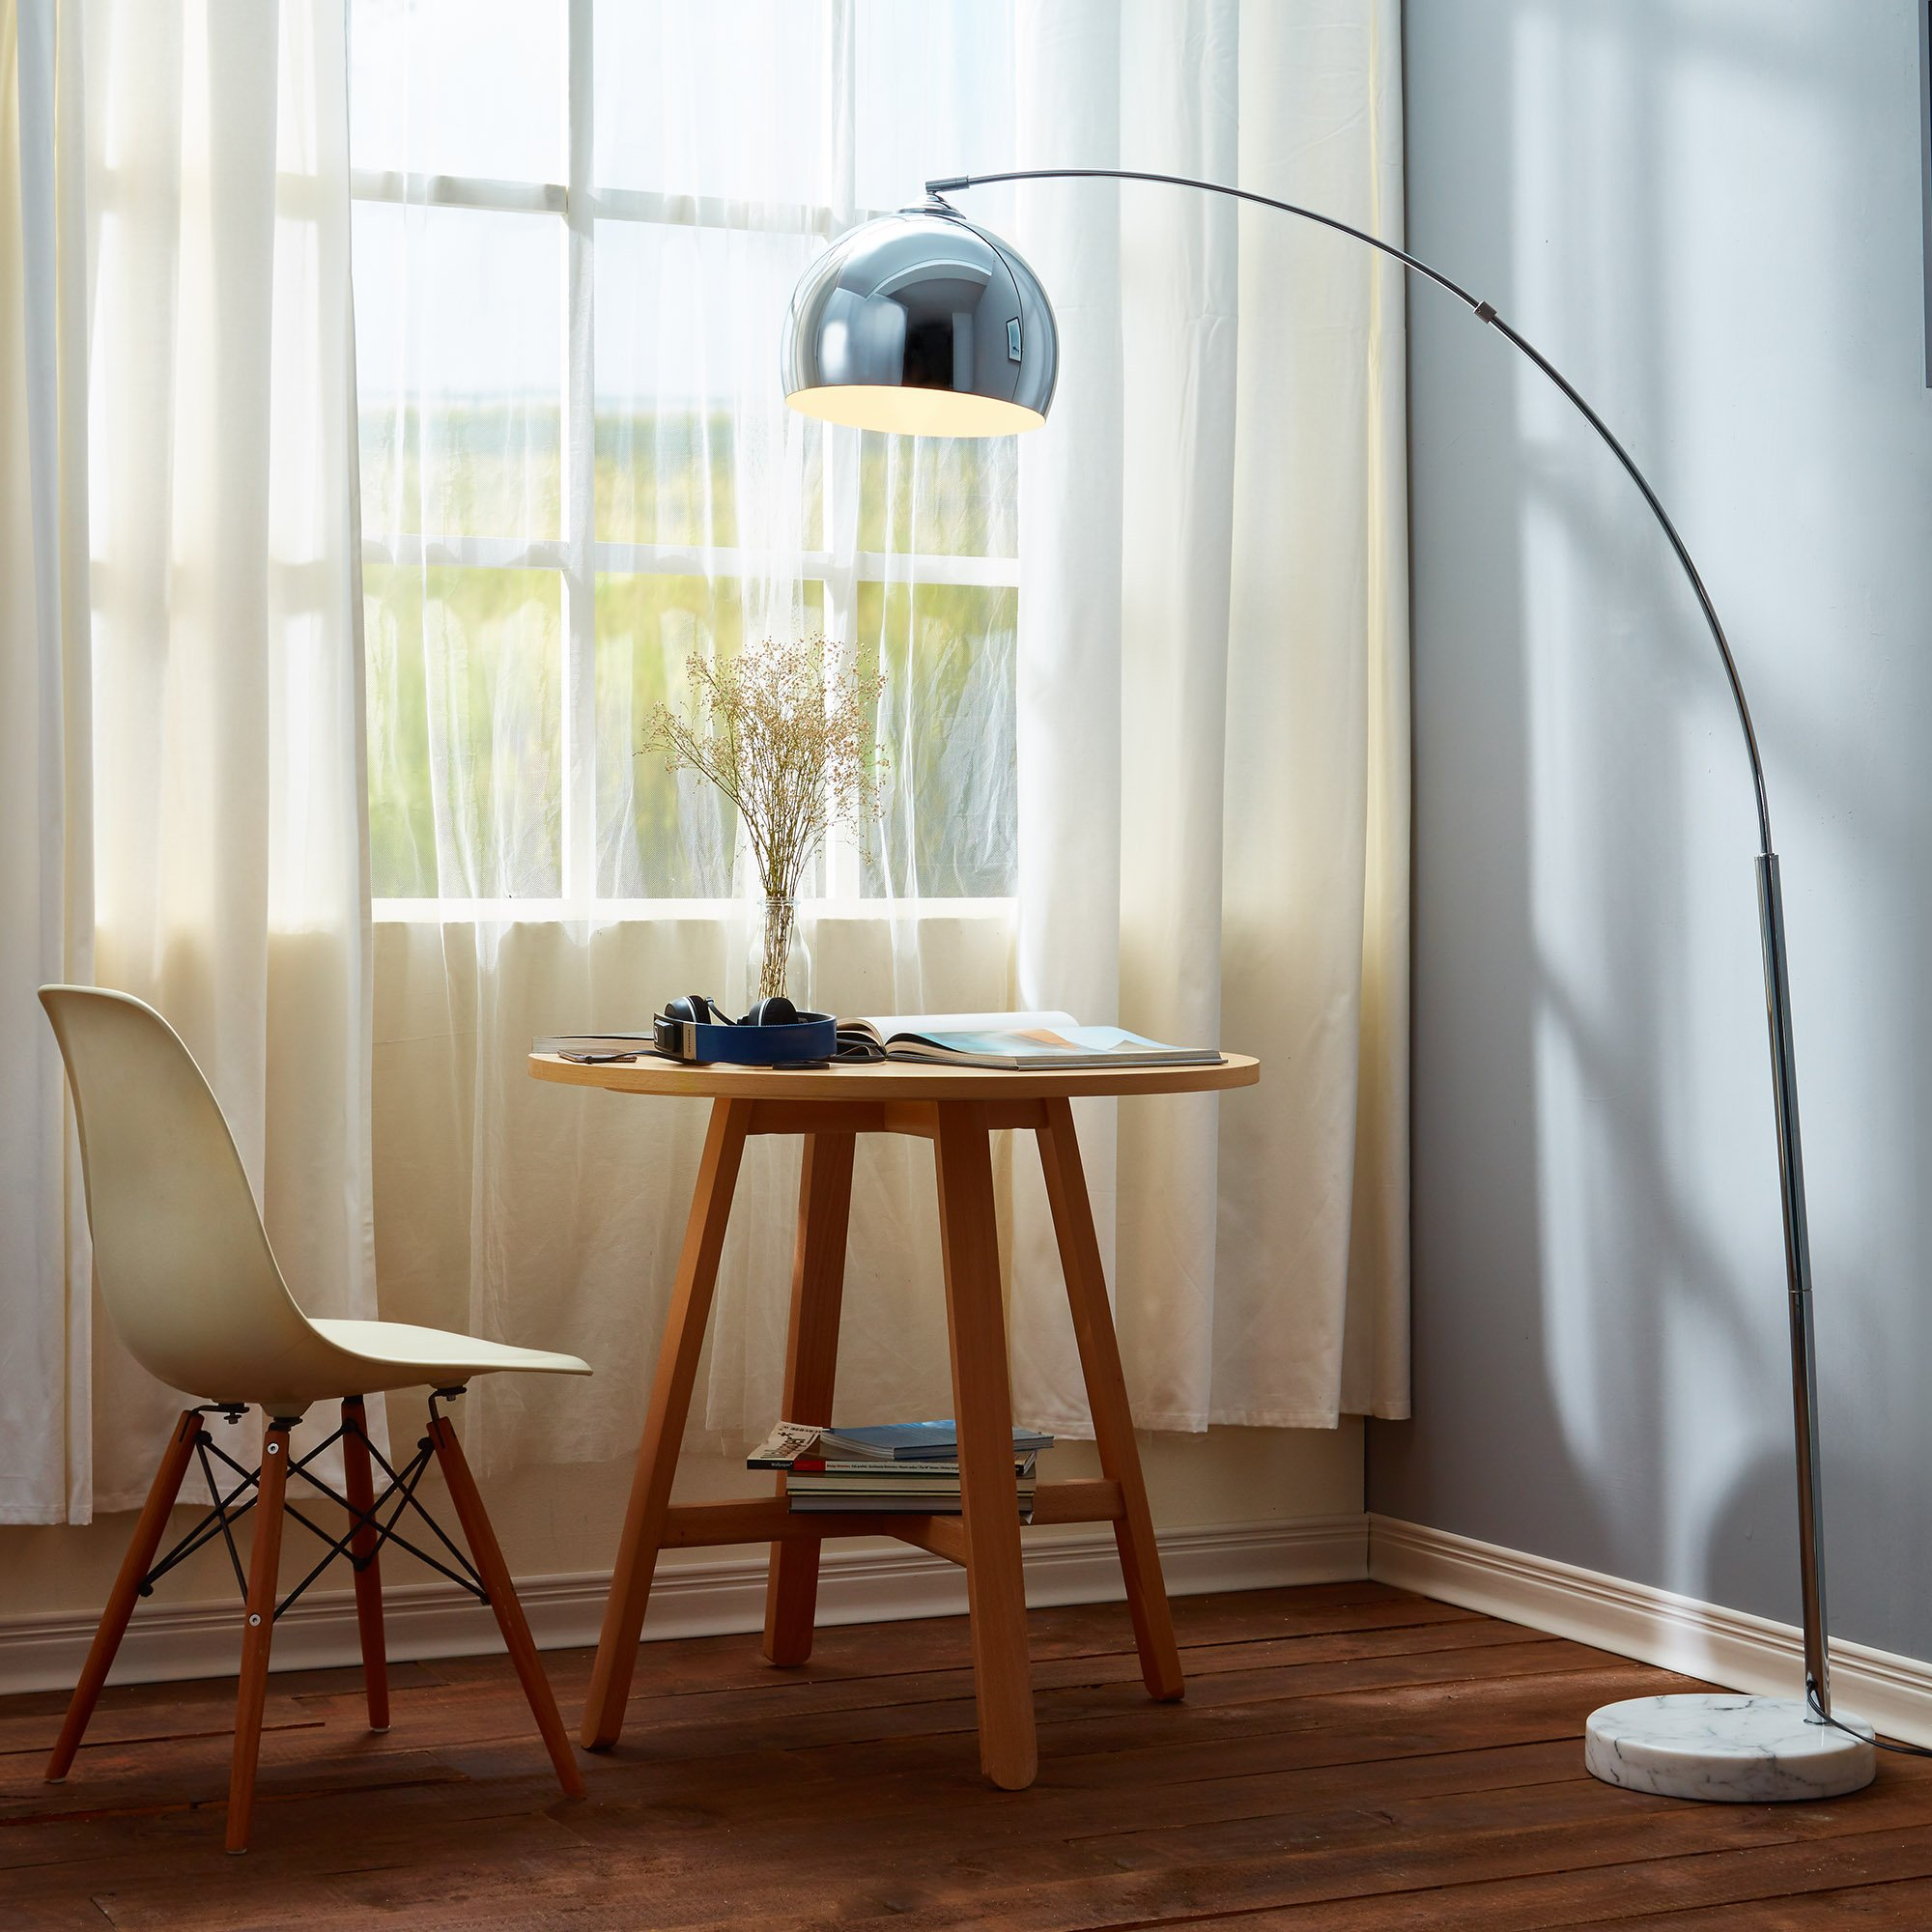 Versanora VN-L00010 Arquer Metal Arc 67'' Height Chrome Finished Shade and White Marble Base Floor Lamp by Versanora